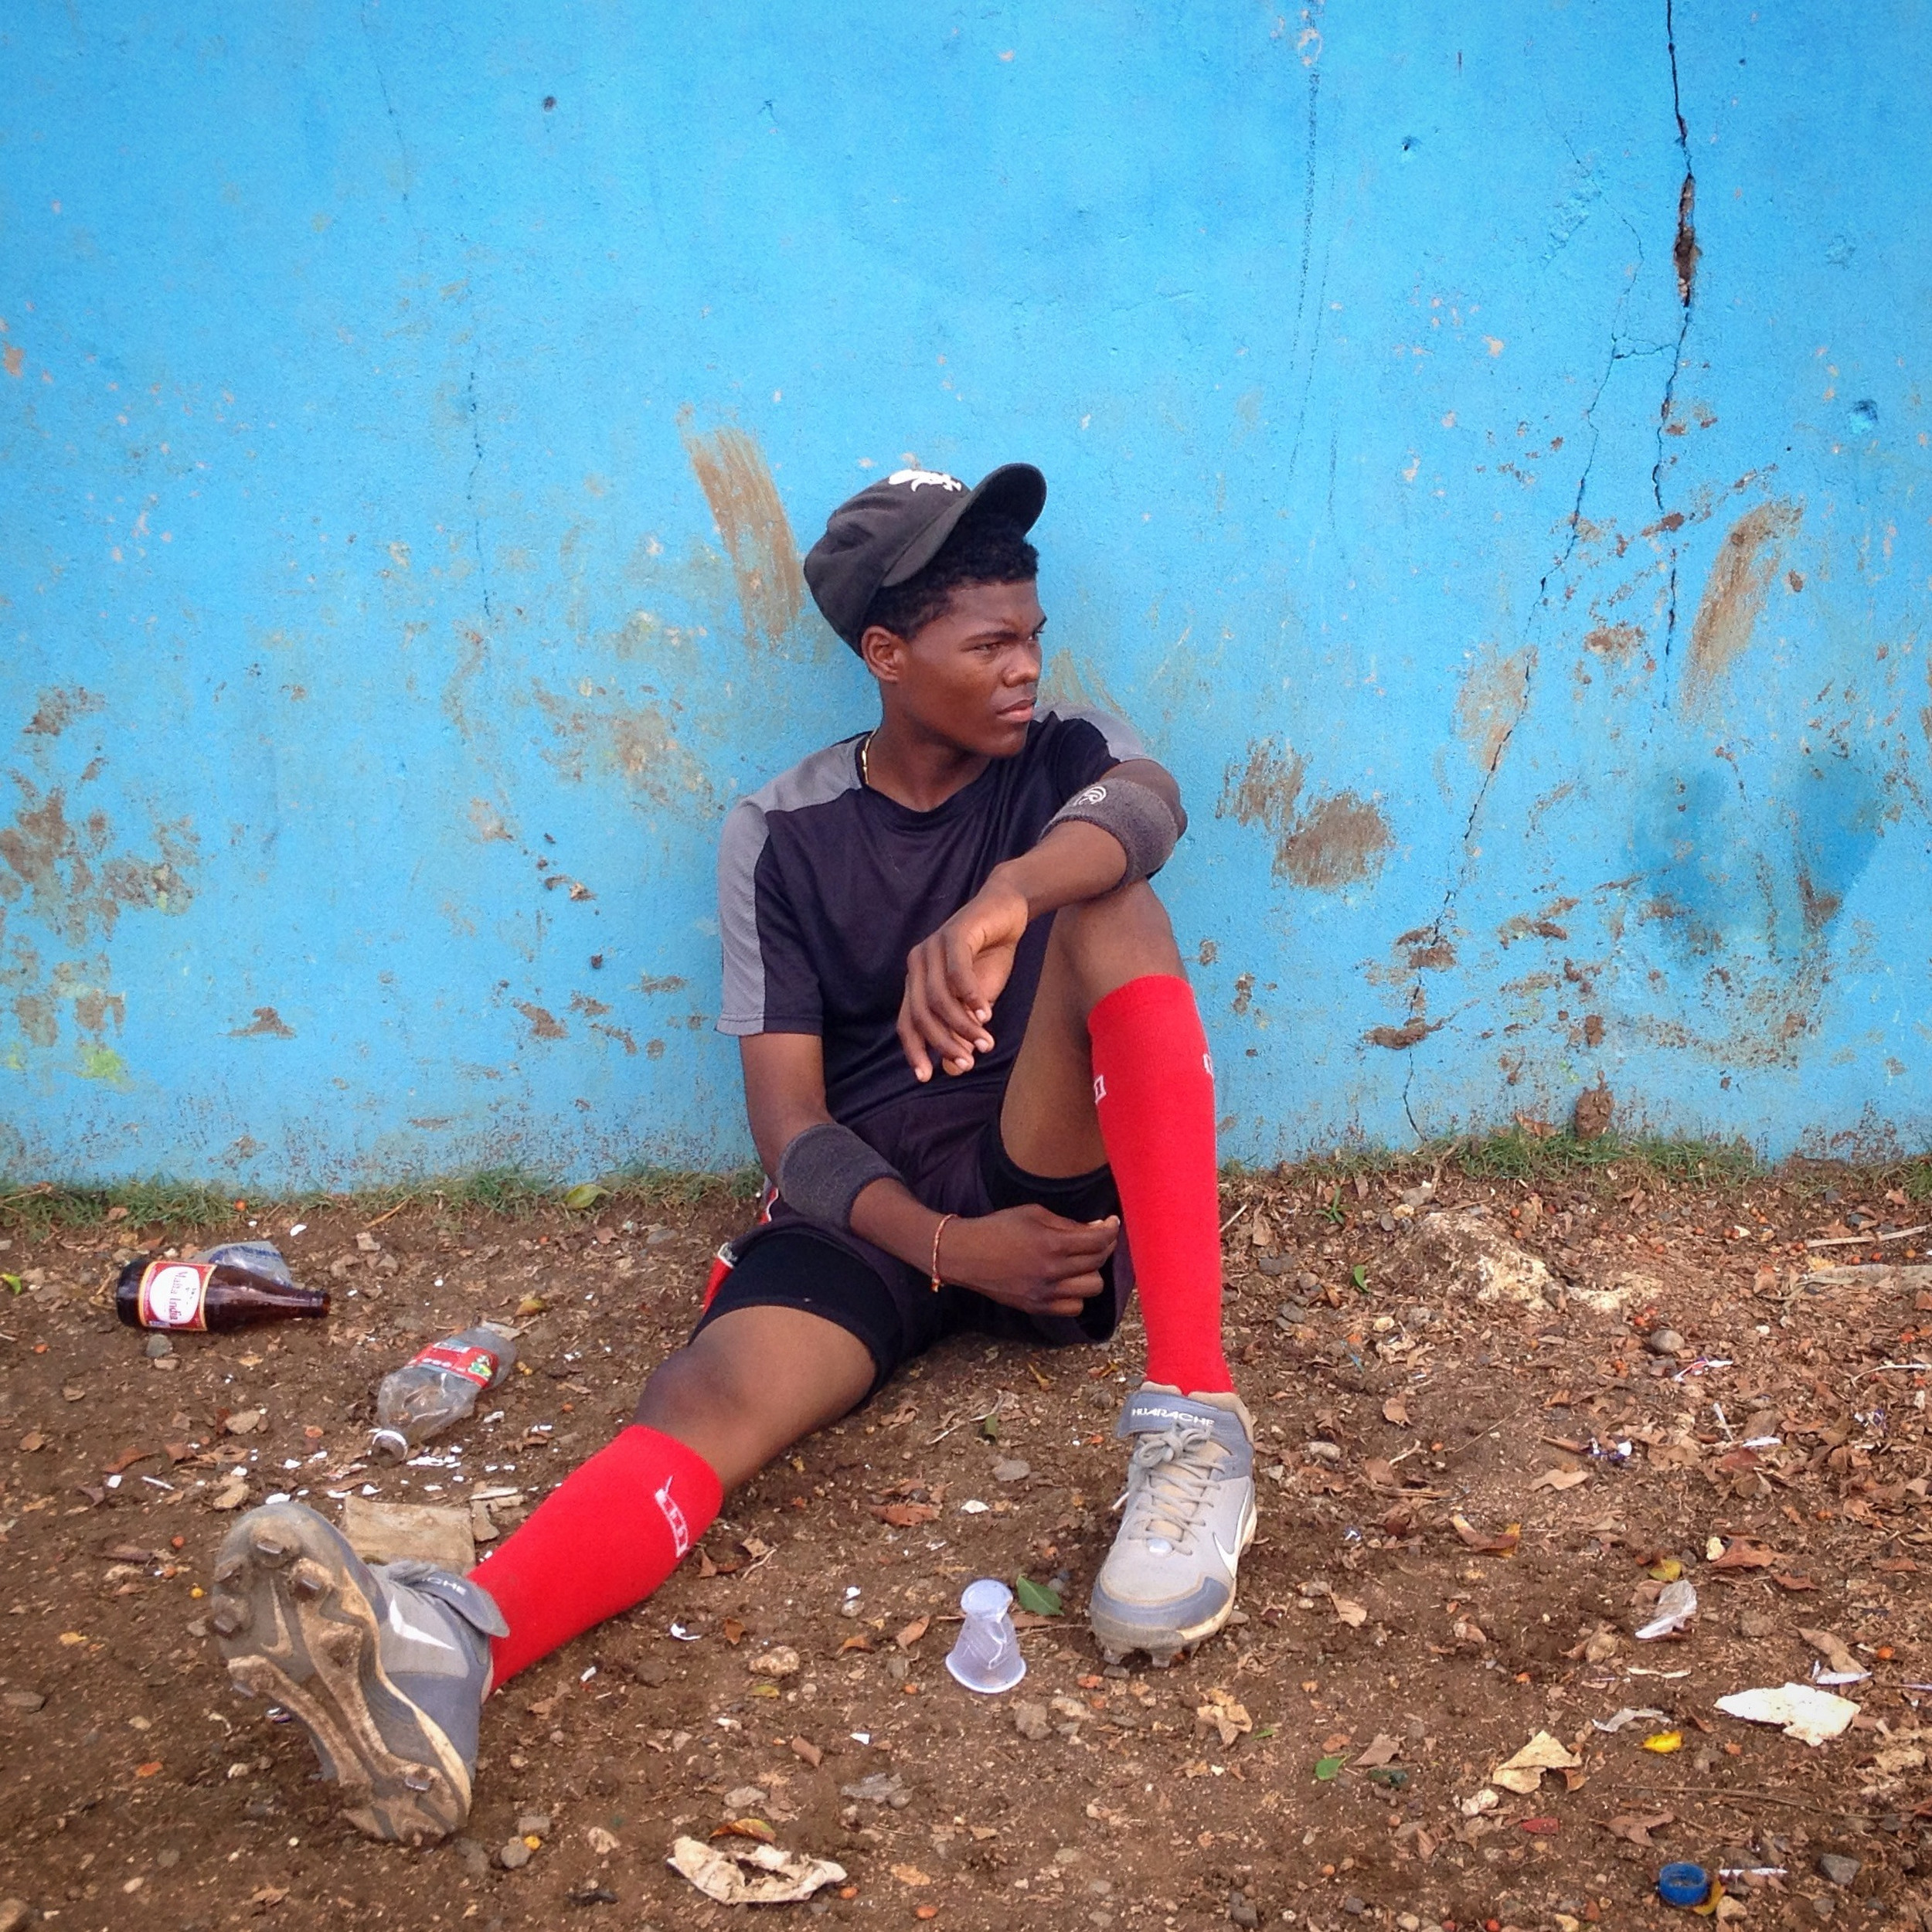 Jean Carlos, 16, rests during practice at the Los Caribe baseball field in the Dominican Republic. He dreams of being an outfielder for the Boston Red Sox. (Tatiana Fernandez Geara)